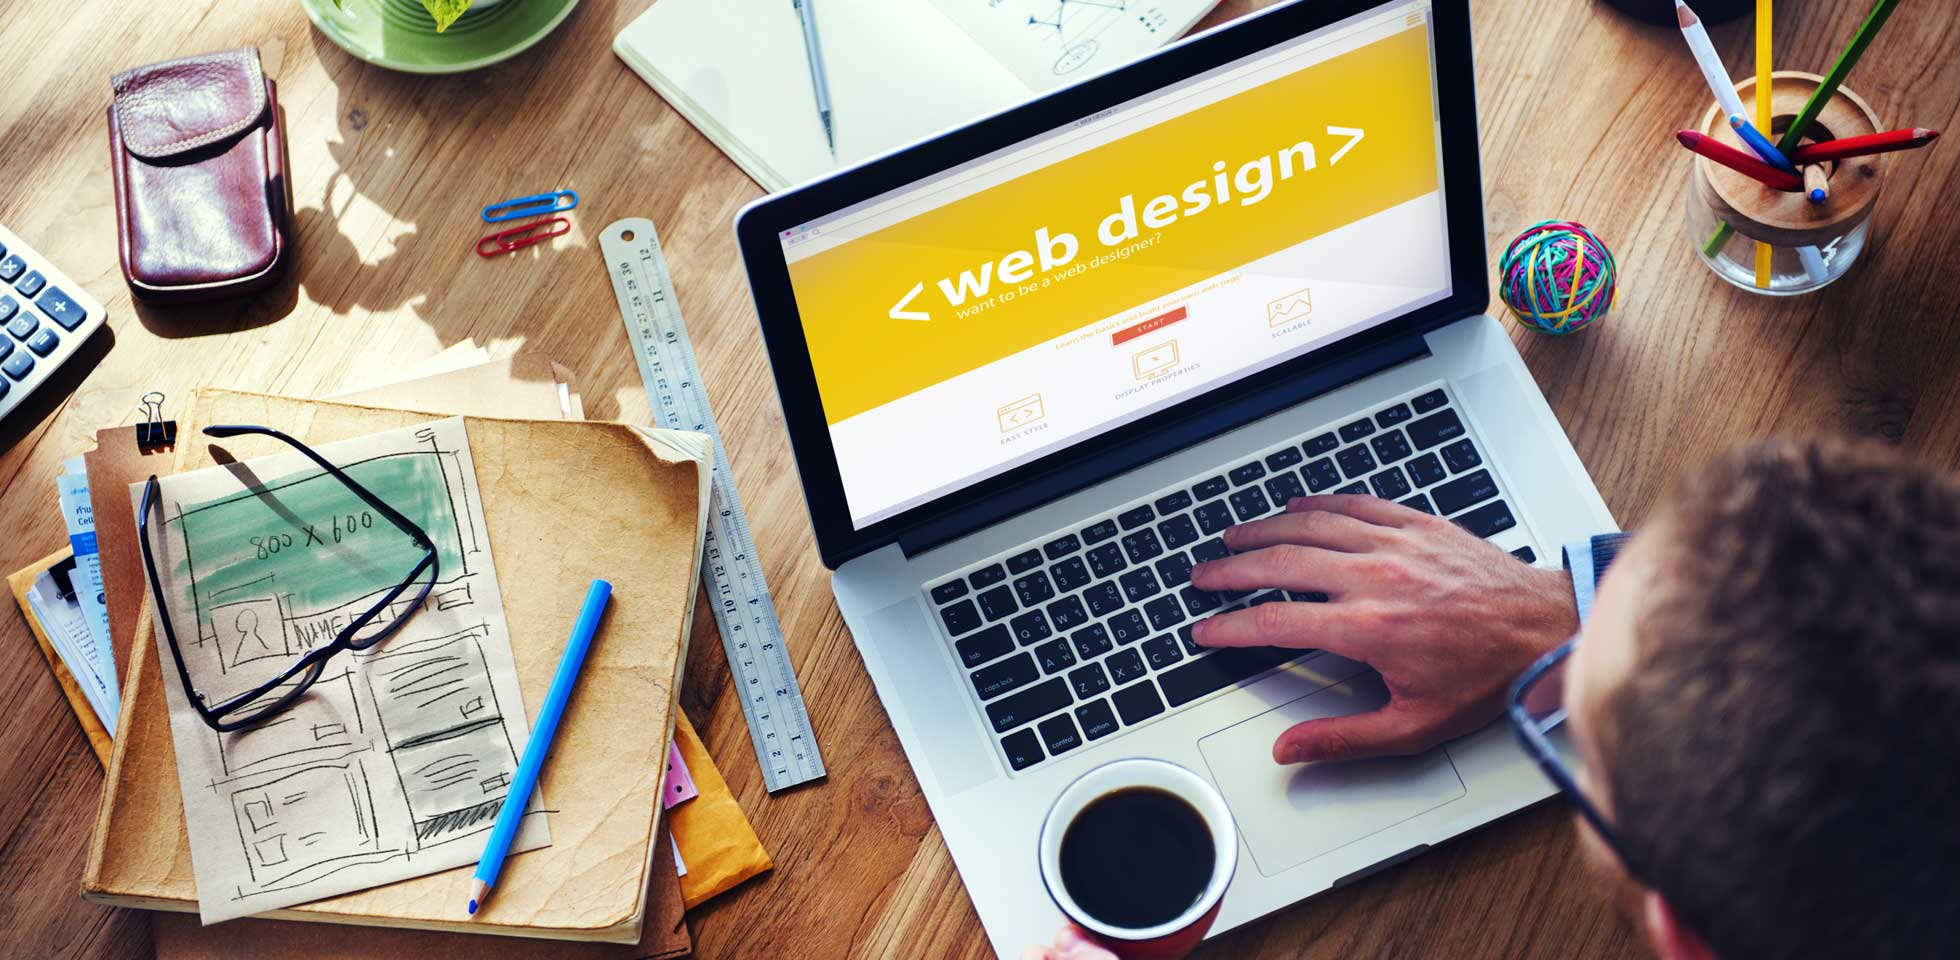 maynARTdesign | Agência de Design e Marketing Digital - Web Design: Sites Corporativos